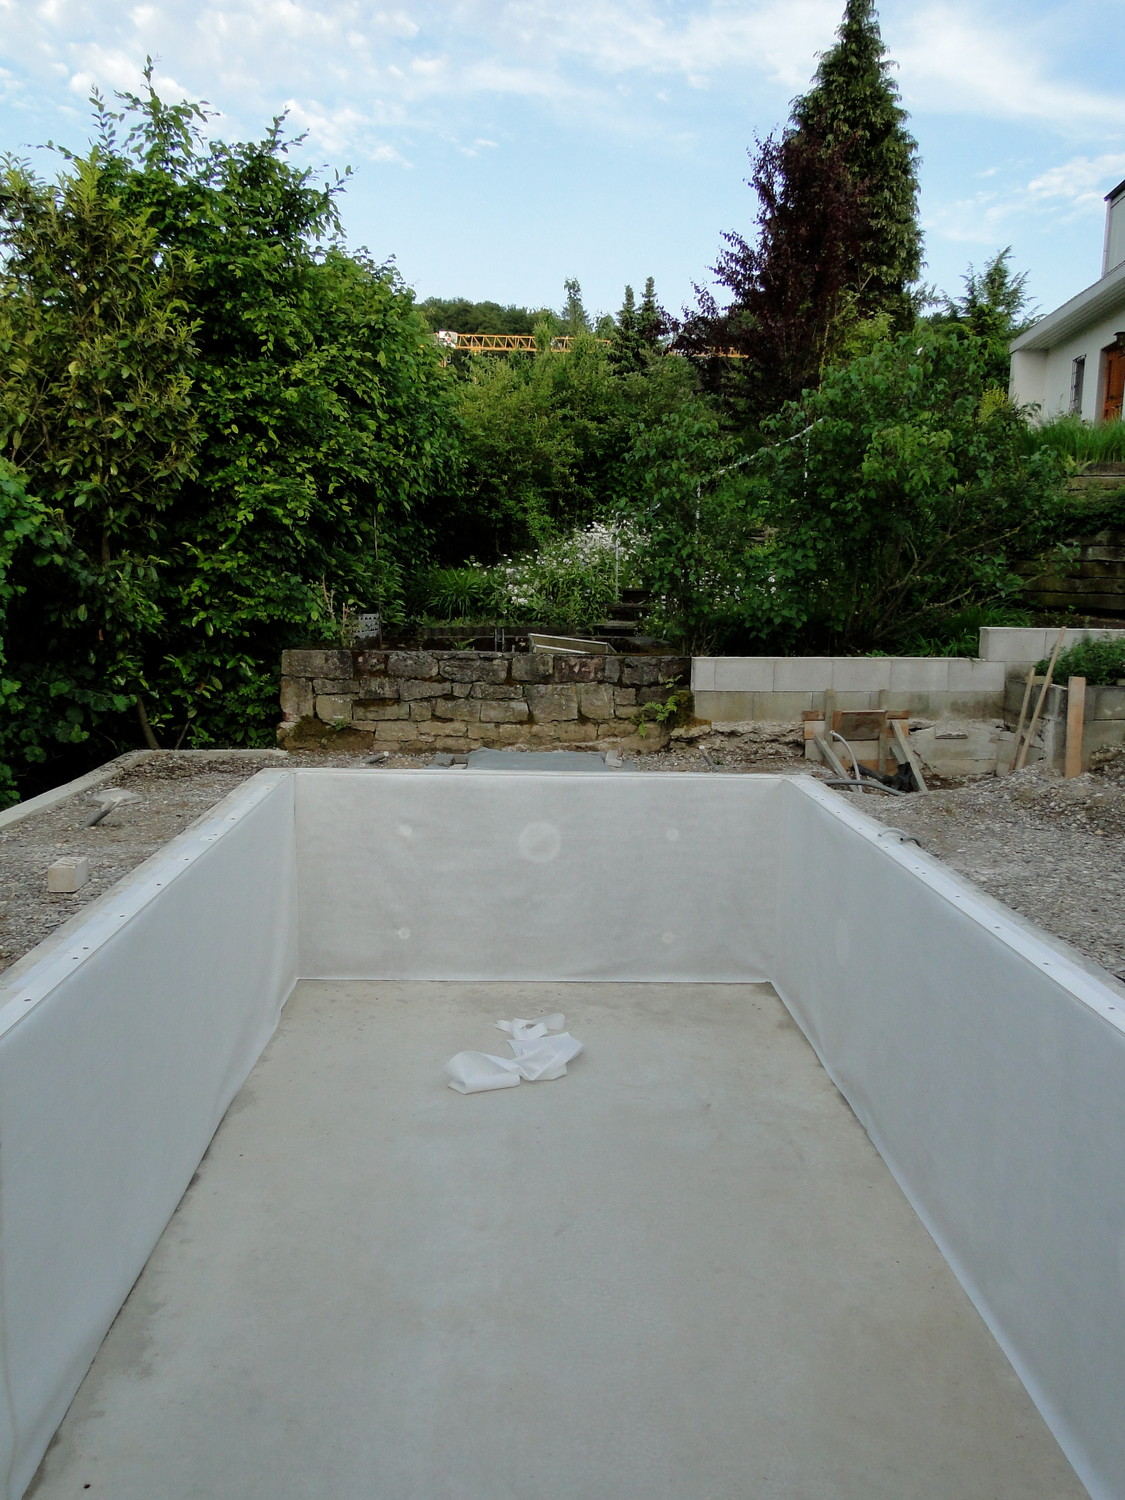 Pool Bauen Video Folie Verlegen Pool Selber Bauen